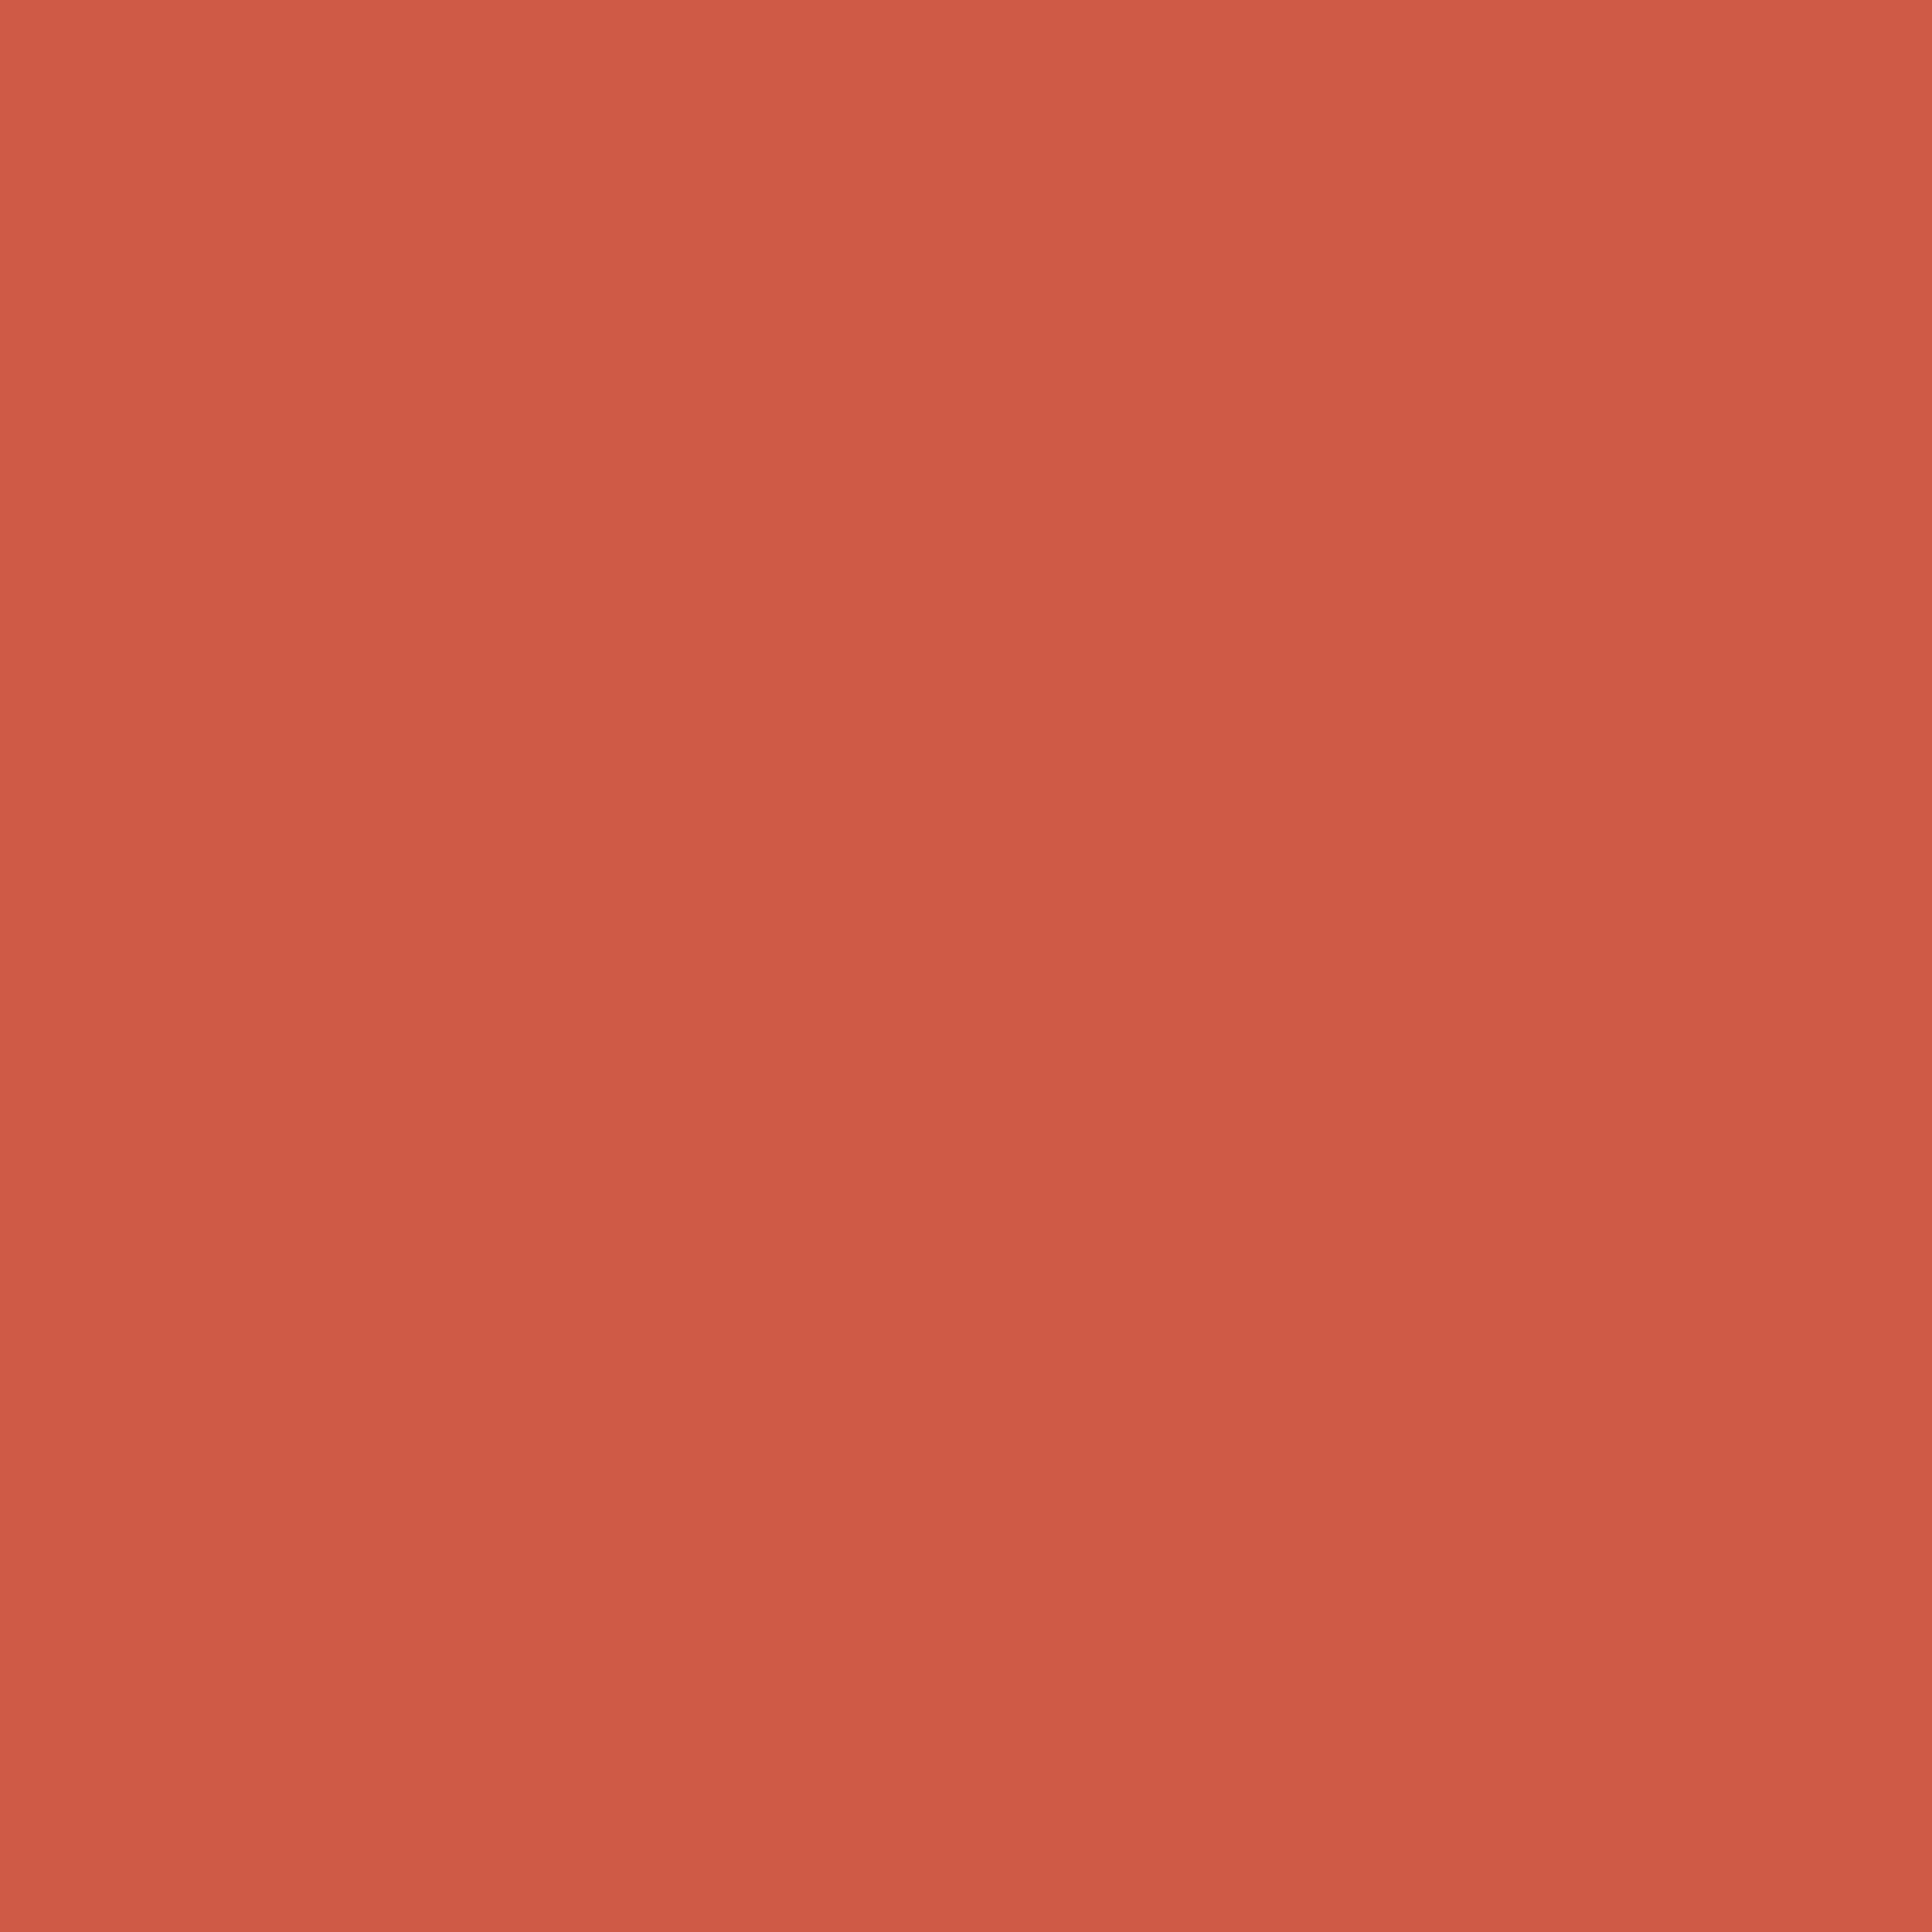 2732x2732 Dark Coral Solid Color Background